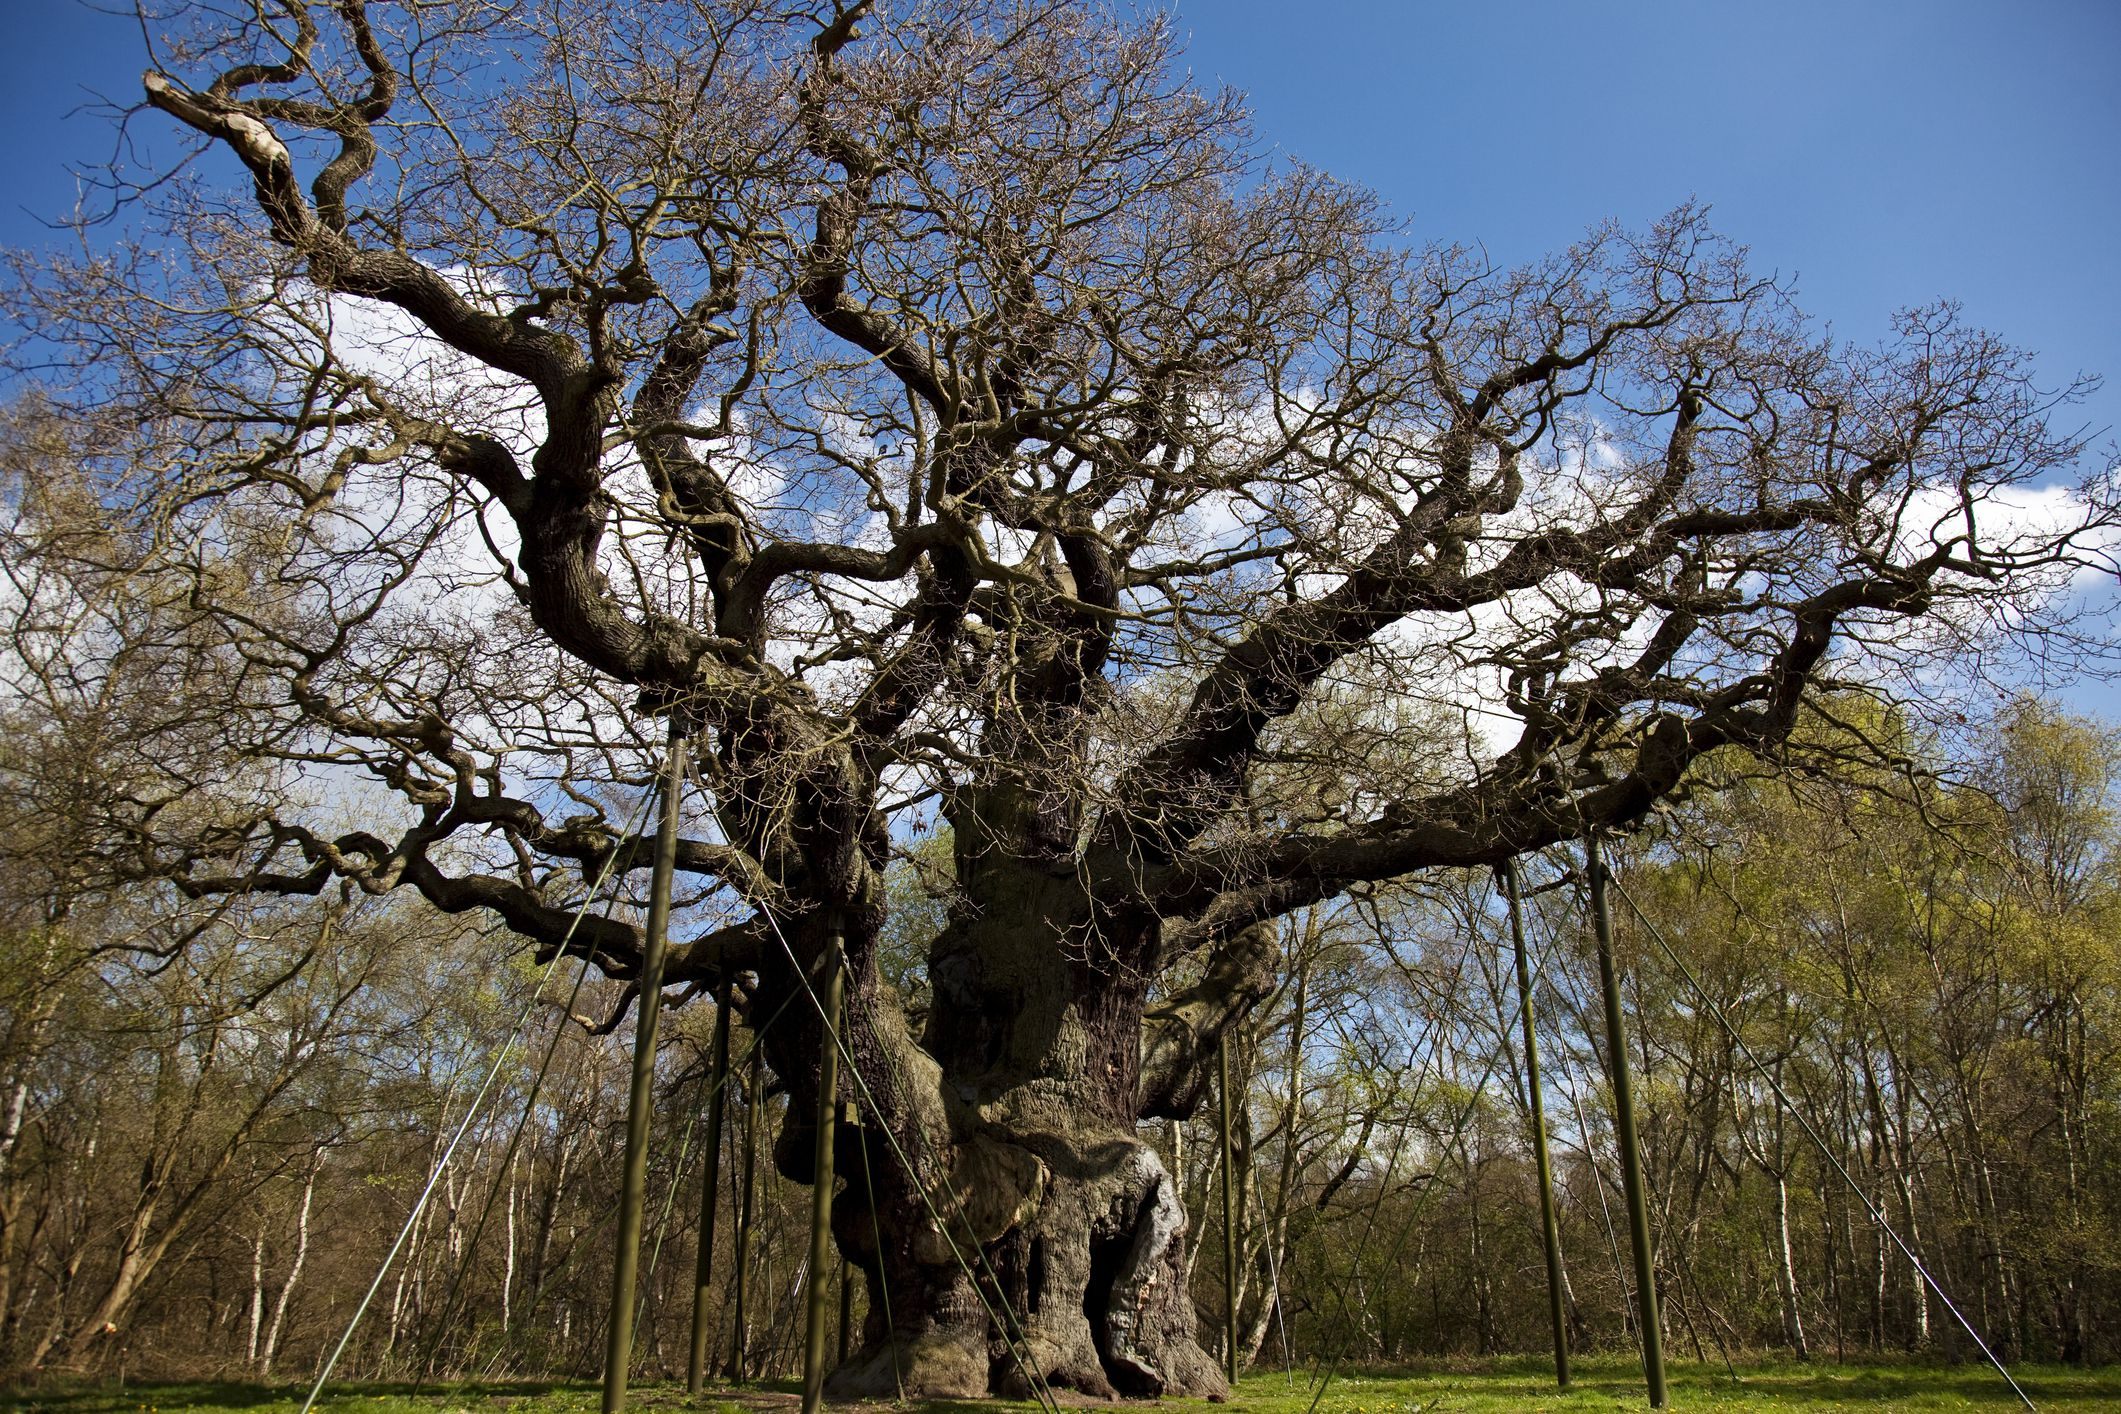 Ancient Major Oak in Sherwood Forest is known as Robin Hood's hiding place